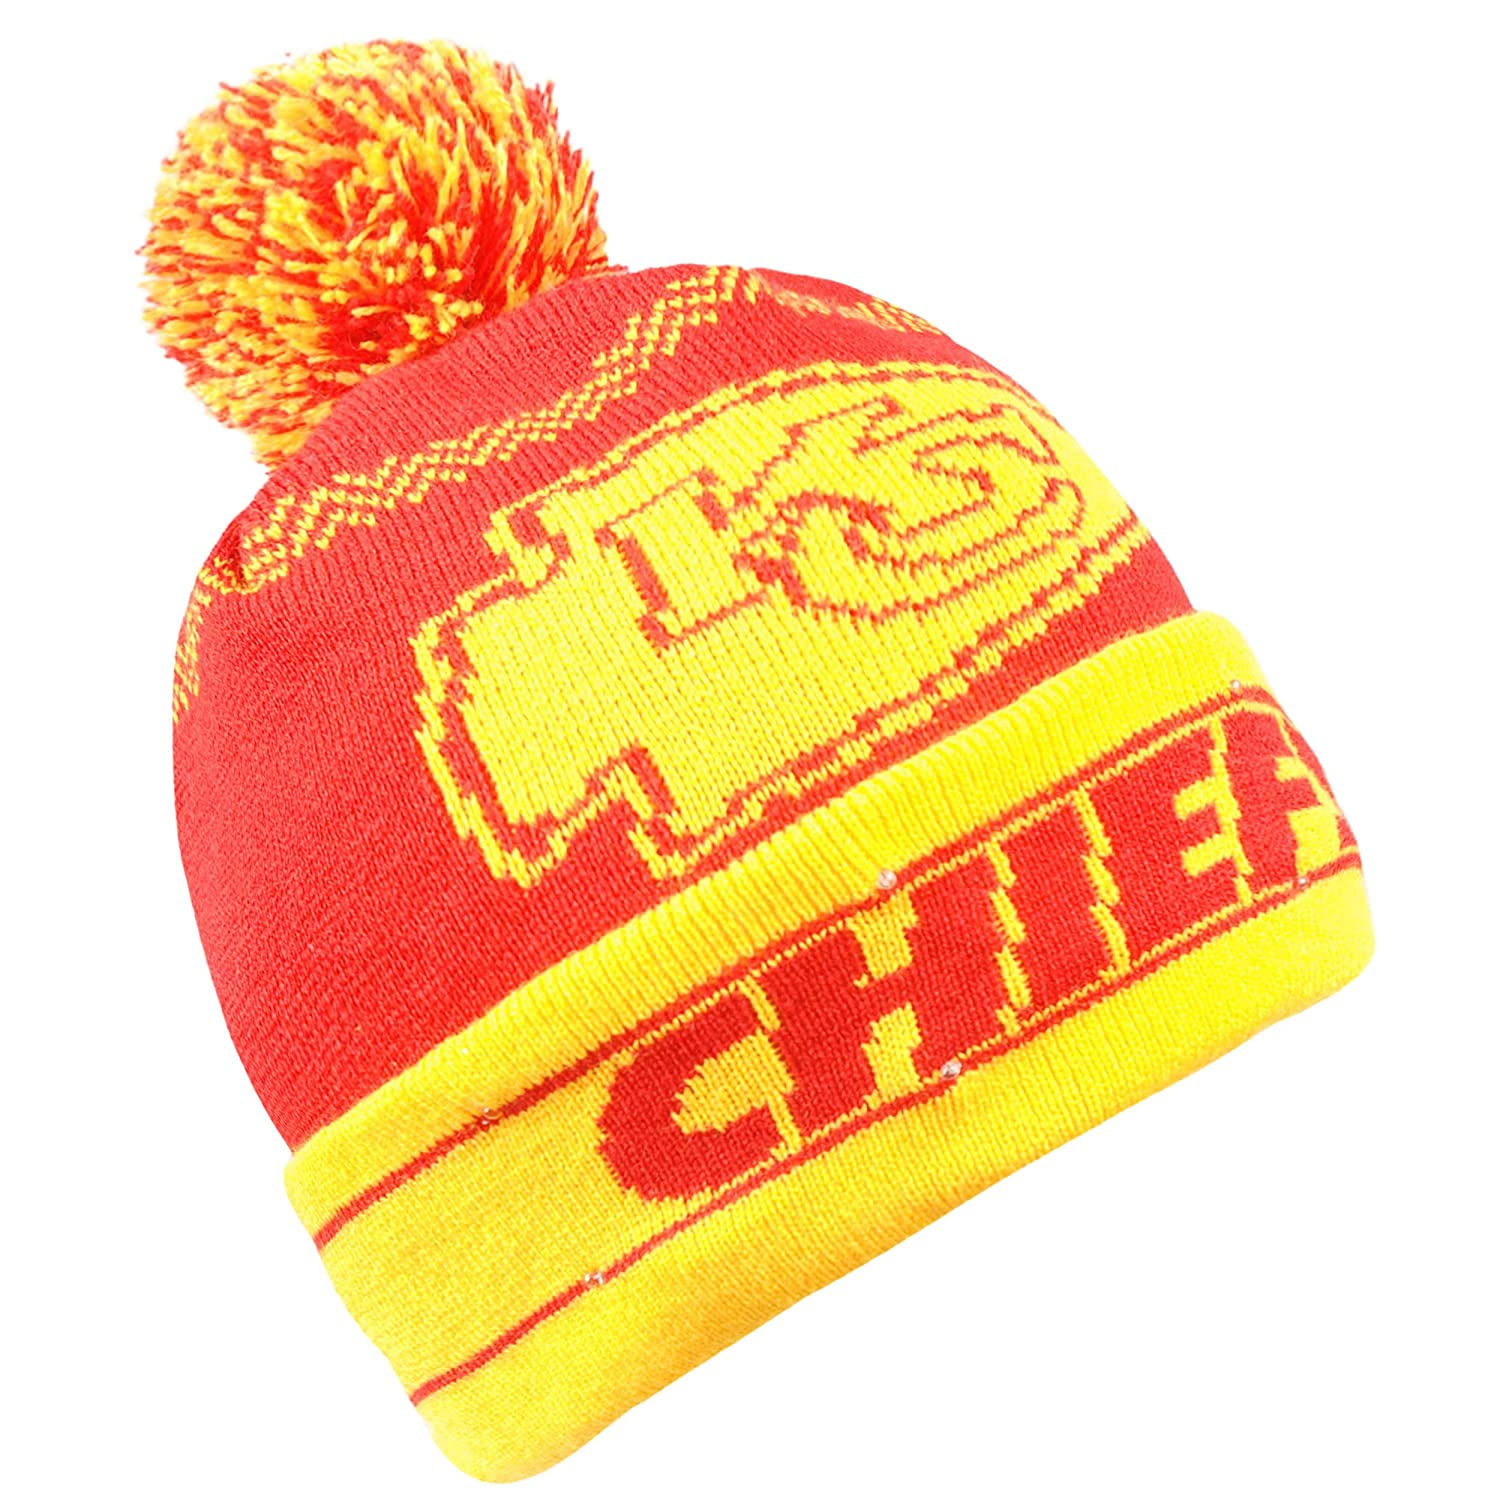 8e9372233165a1 Amazon.com : Forever Collectibles NFL Kansas City Chiefs LED Pom Pom Knit  Hat, Red, One Size : Sports & Outdoors